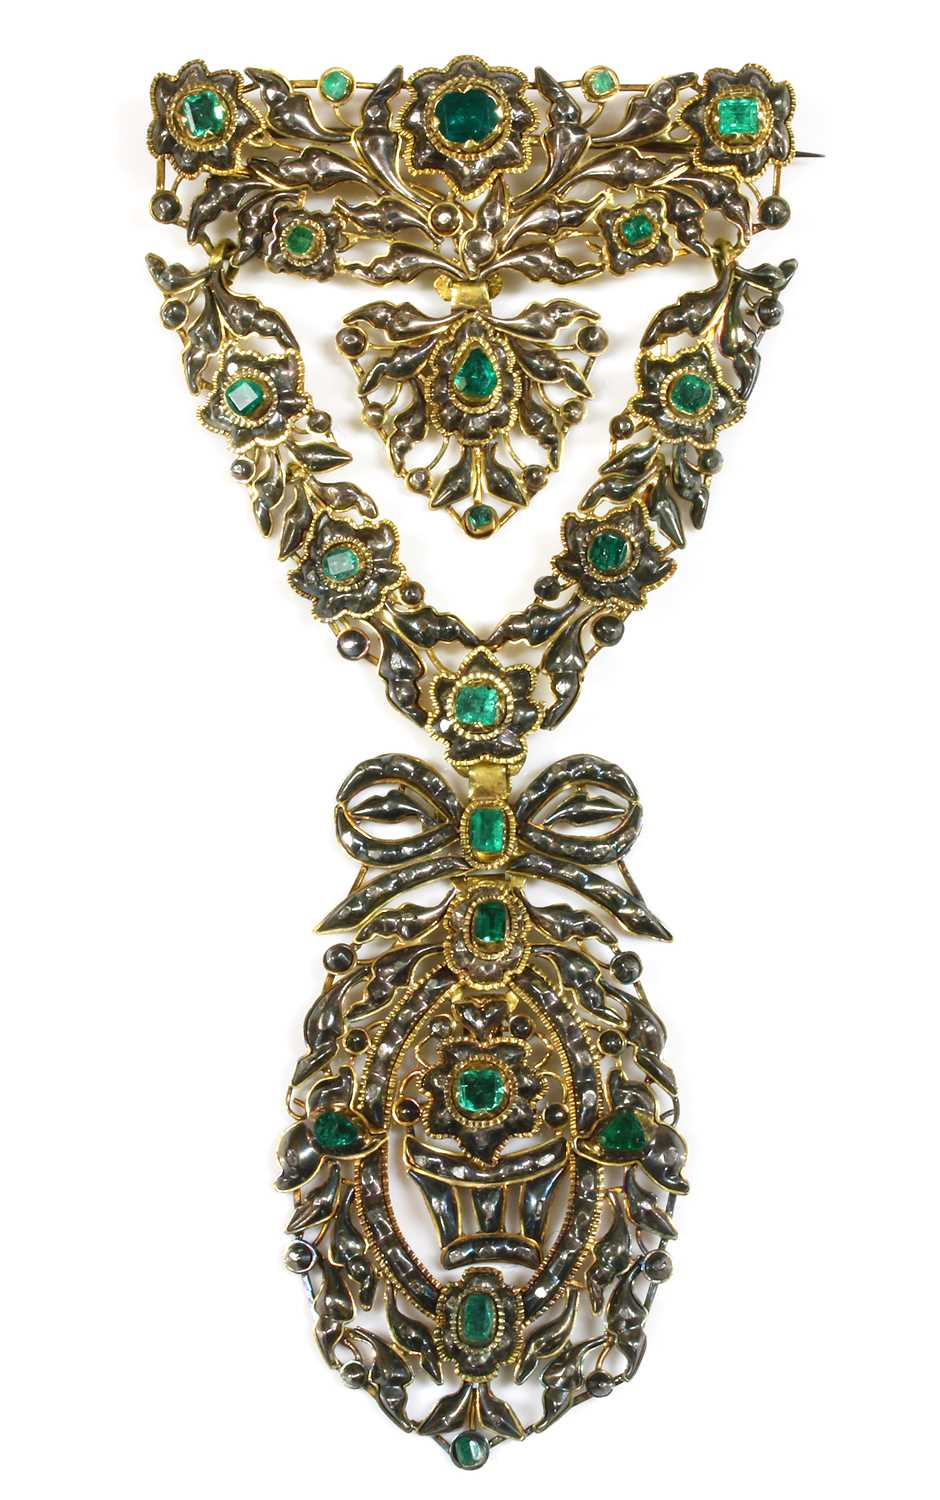 Lot 4-A Portuguese or Iberian emerald and diamond stomacher brooch, c.1750-1780